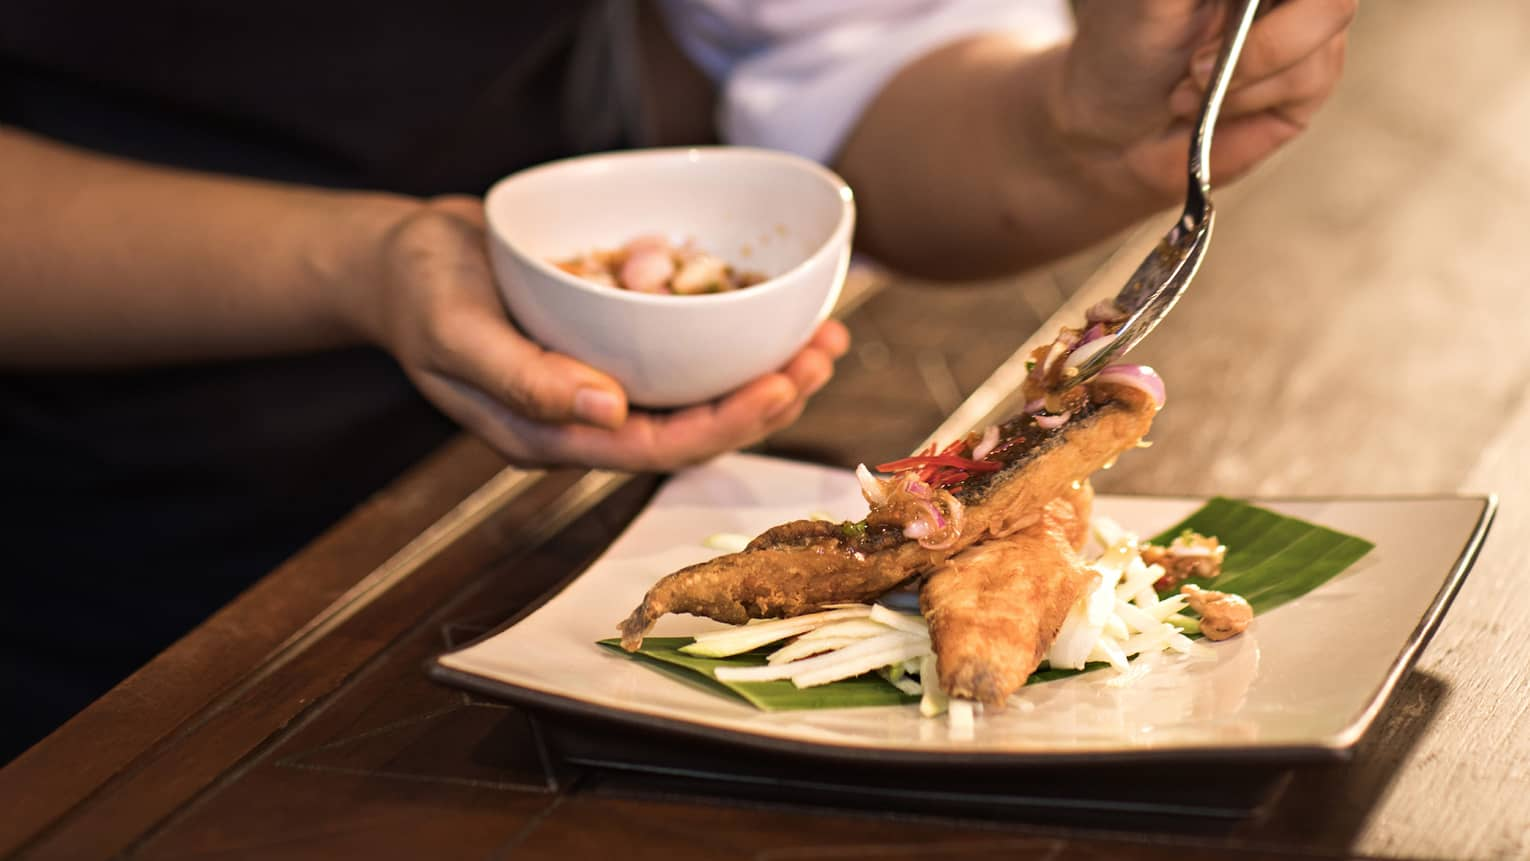 Woman spoons sauce onto Pra Ram Long Song fried fish on plate